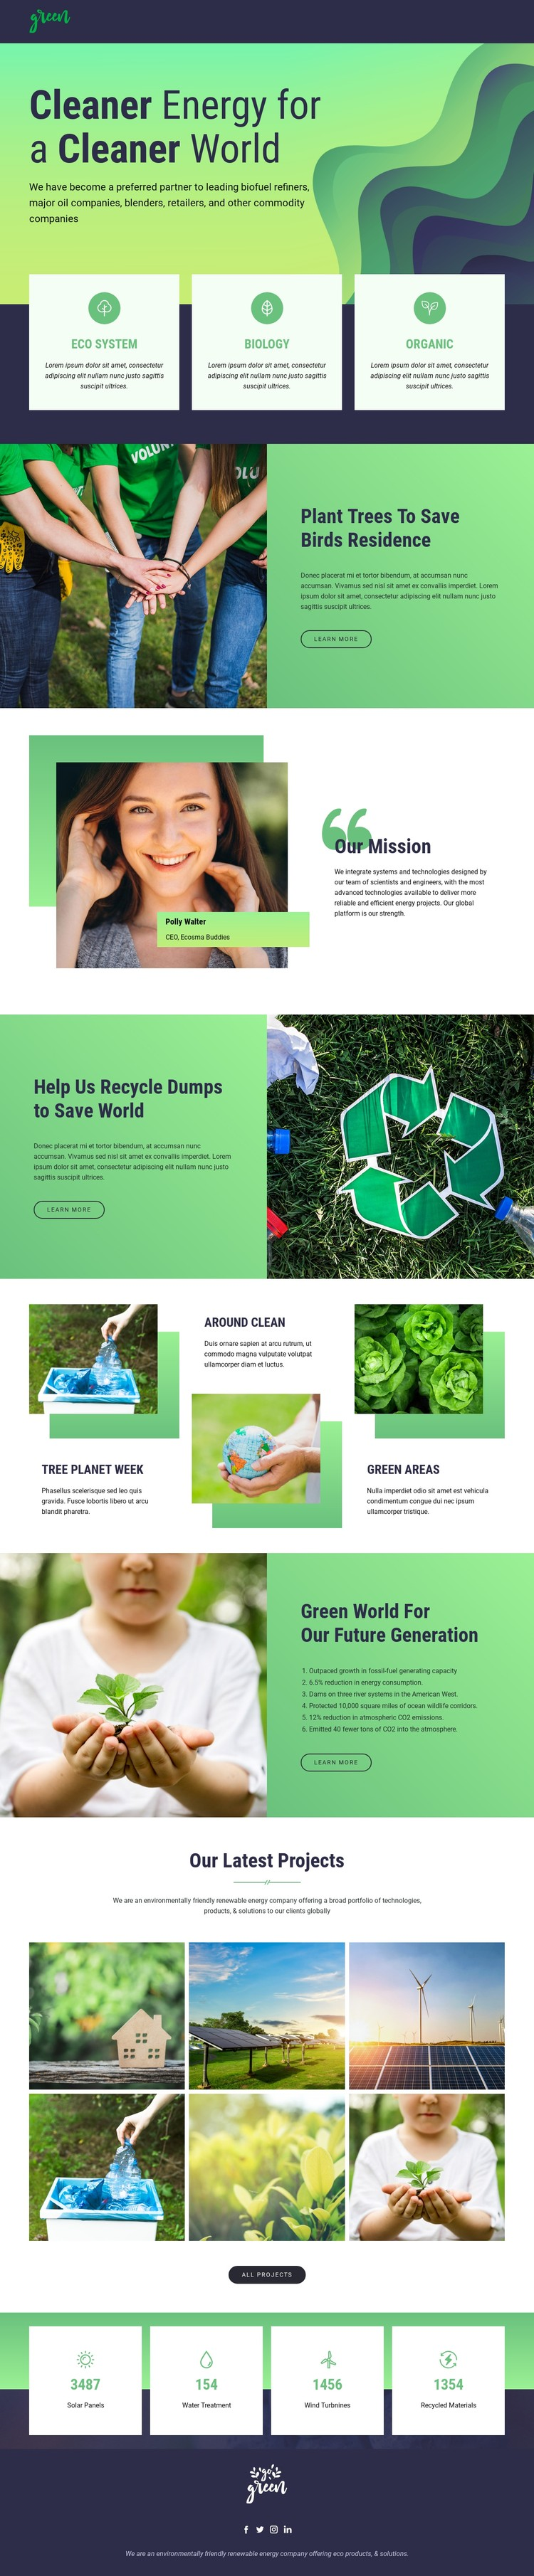 Clean energy to save nature CSS Template